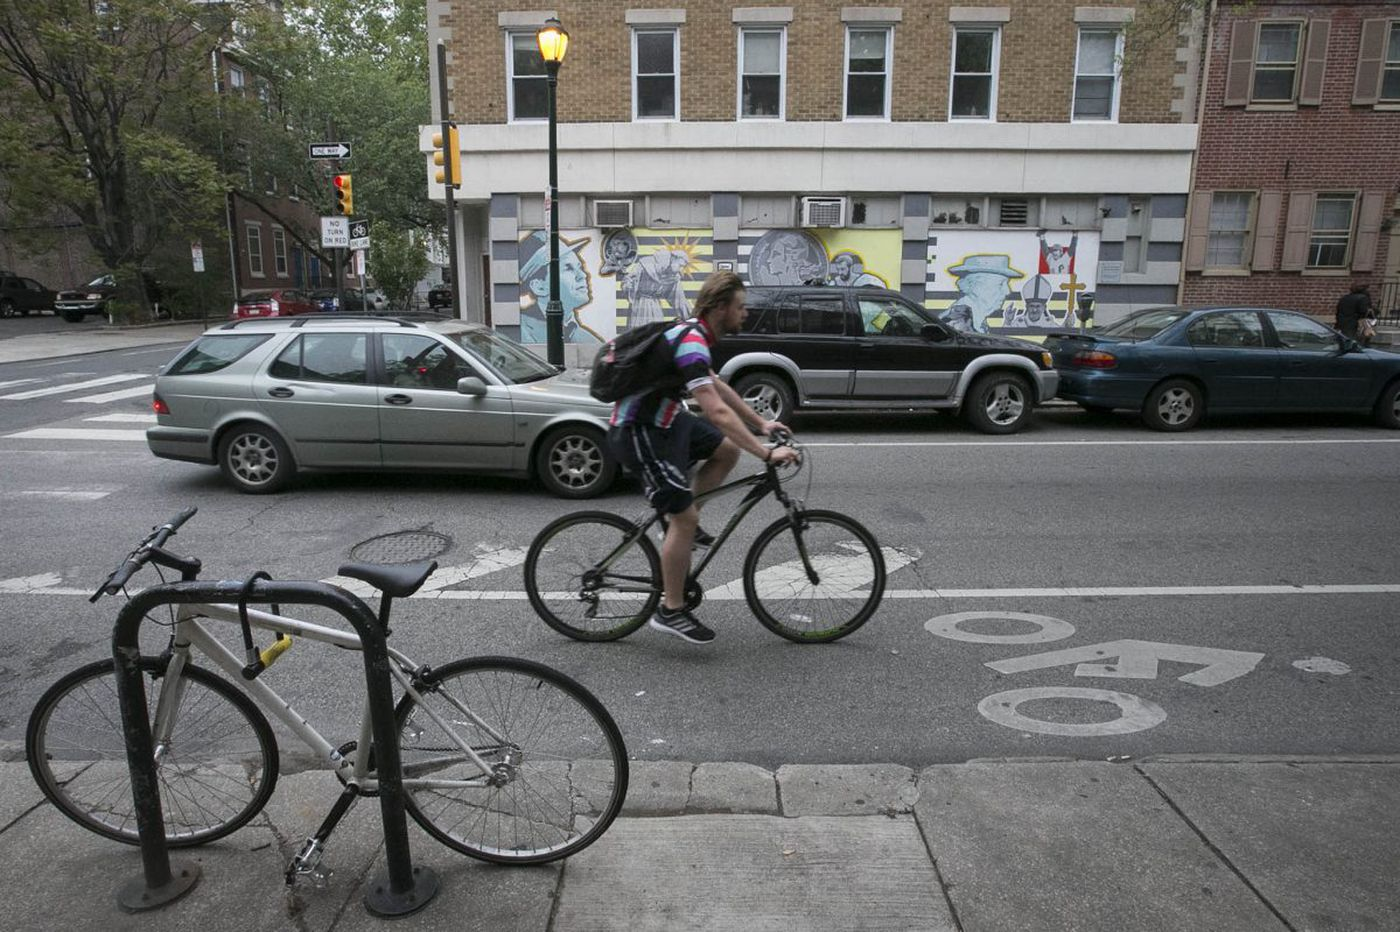 Bike lanes promote safety; time for Philly Council to see that | Editorial